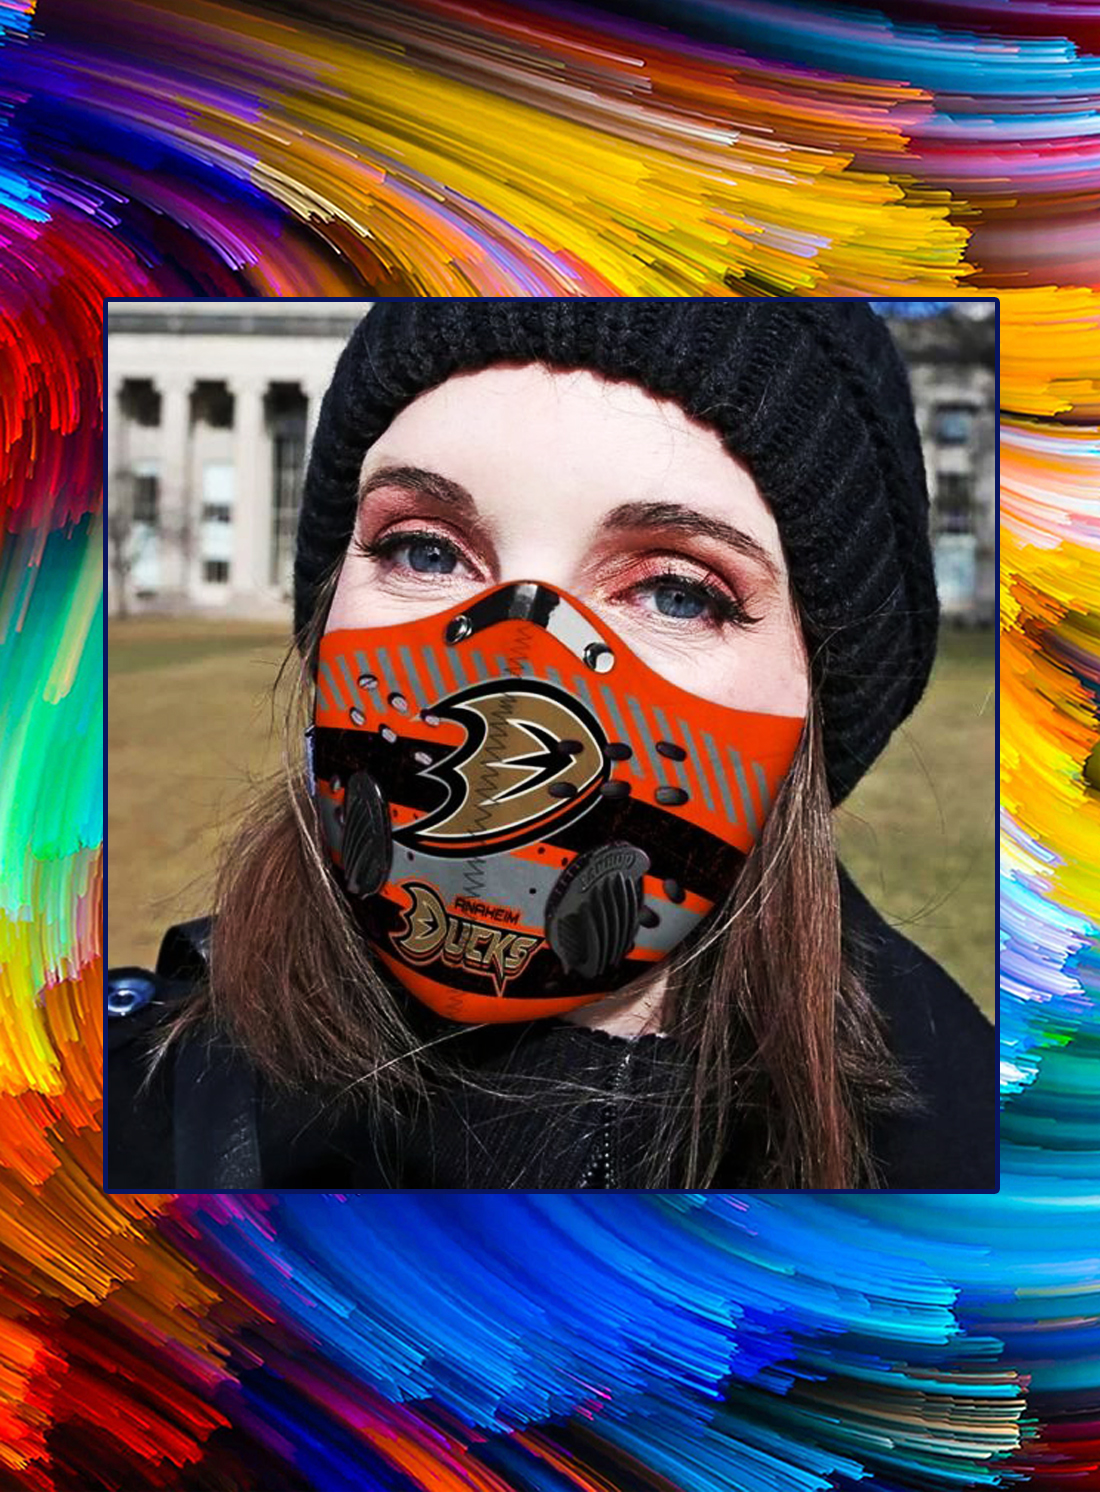 Anaheim ducks filter face mask - Picture 1